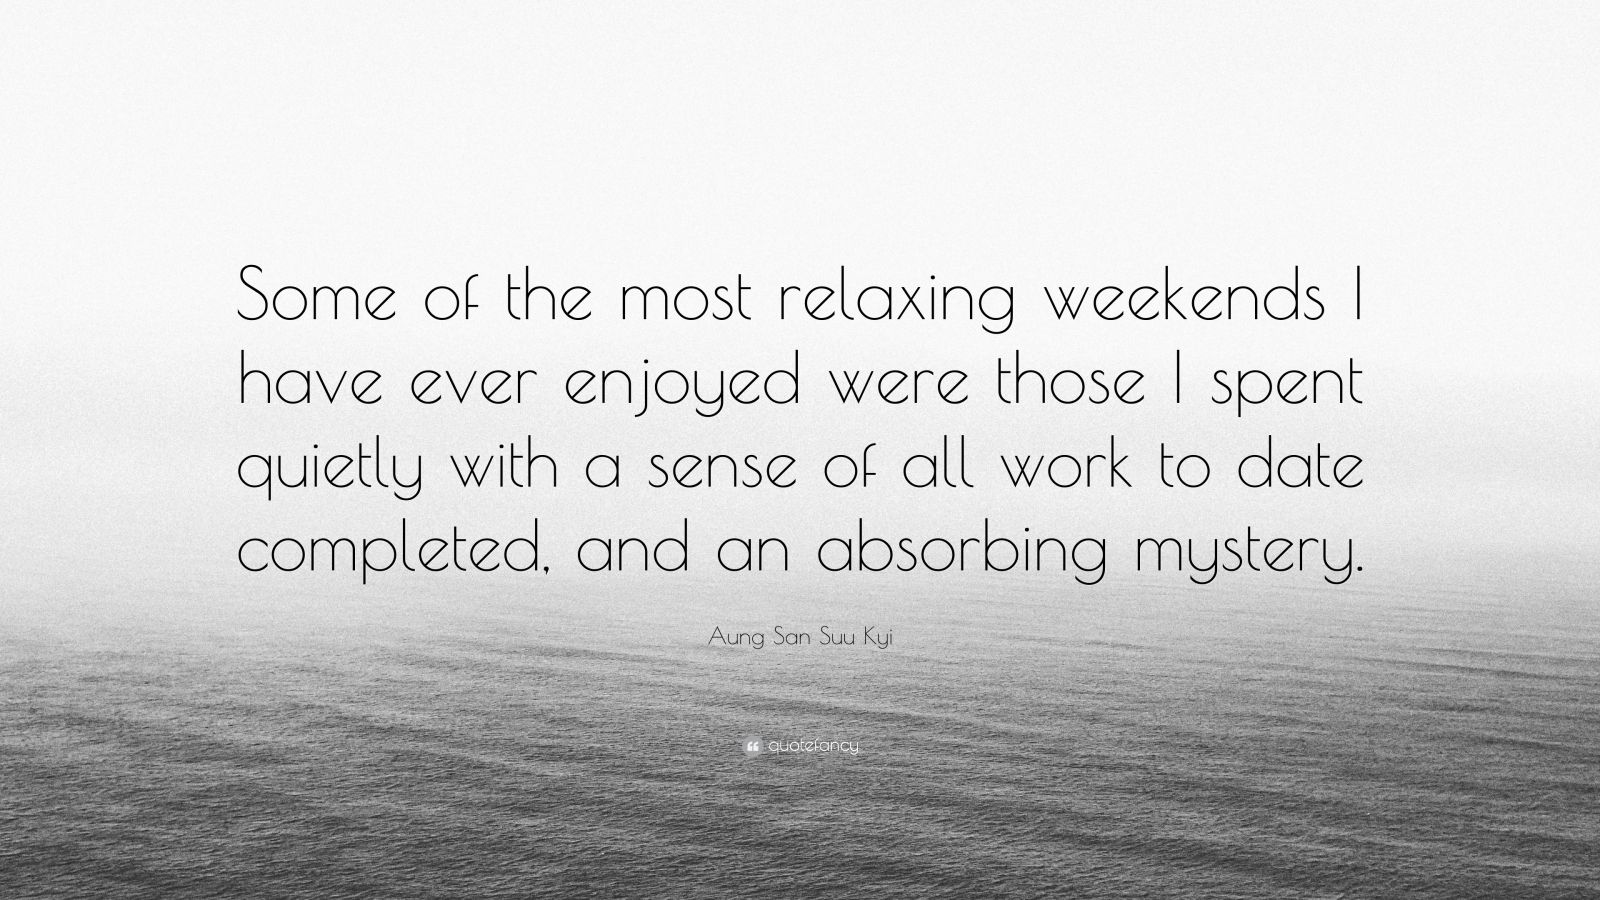 """Aung San Suu Kyi Quote: """"Some of the most relaxing weekends I have ever enjoyed were those I spent quietly with a sense of all work to date completed, and an absorbing mystery."""""""